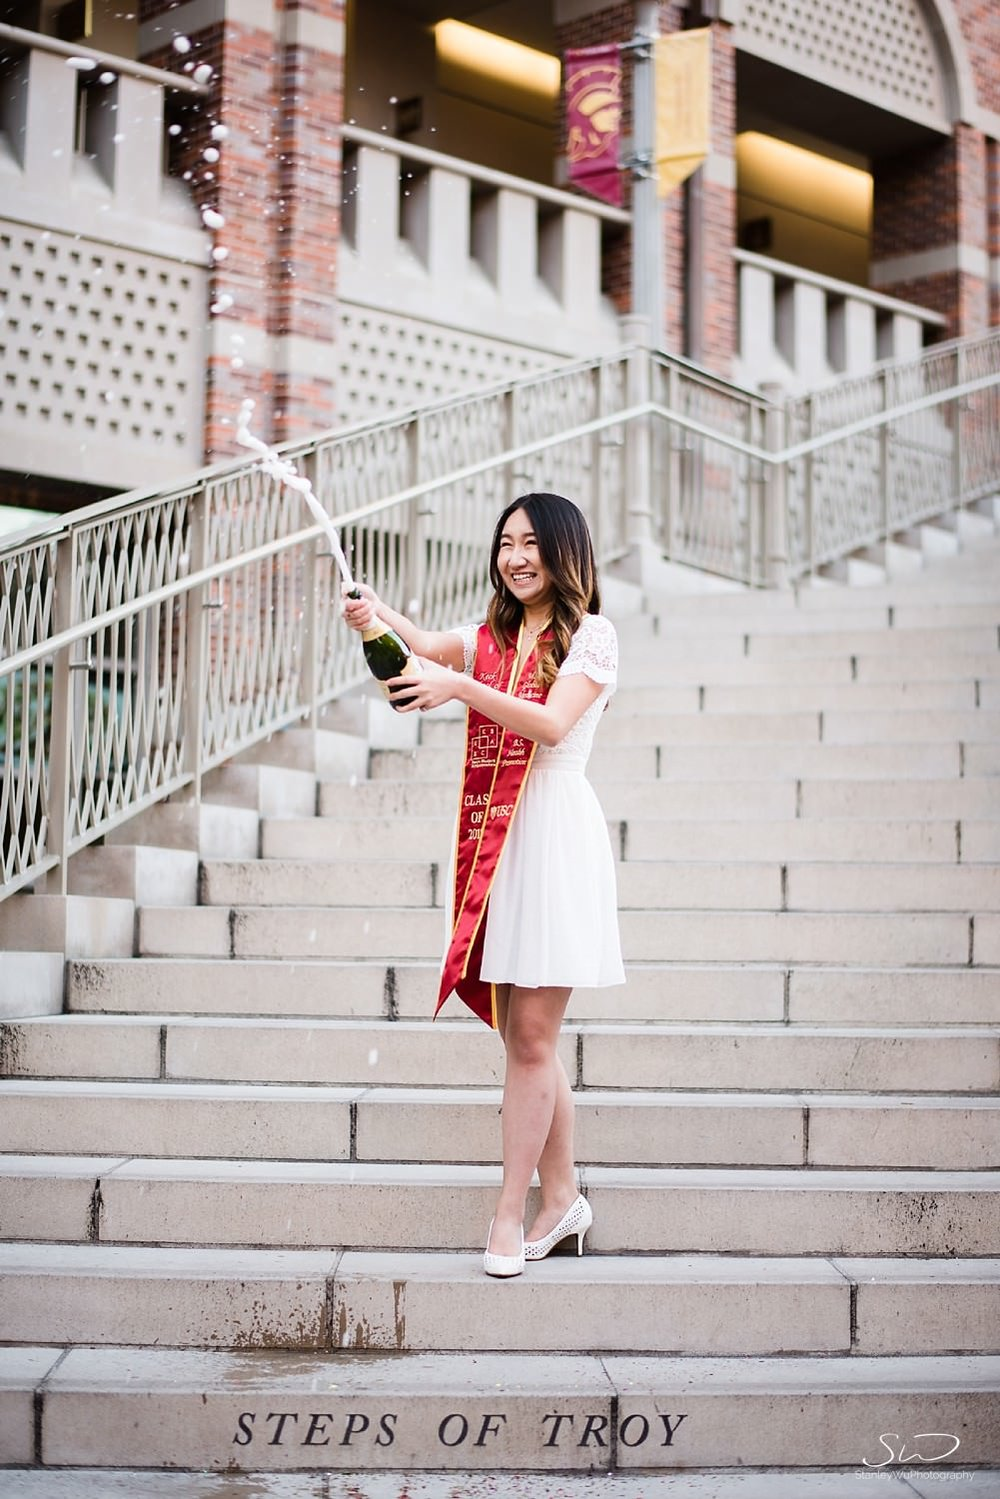 Champagne pop graduation photo at USC | Los Angeles Orange County Senior Portrait & Wedding Photographer